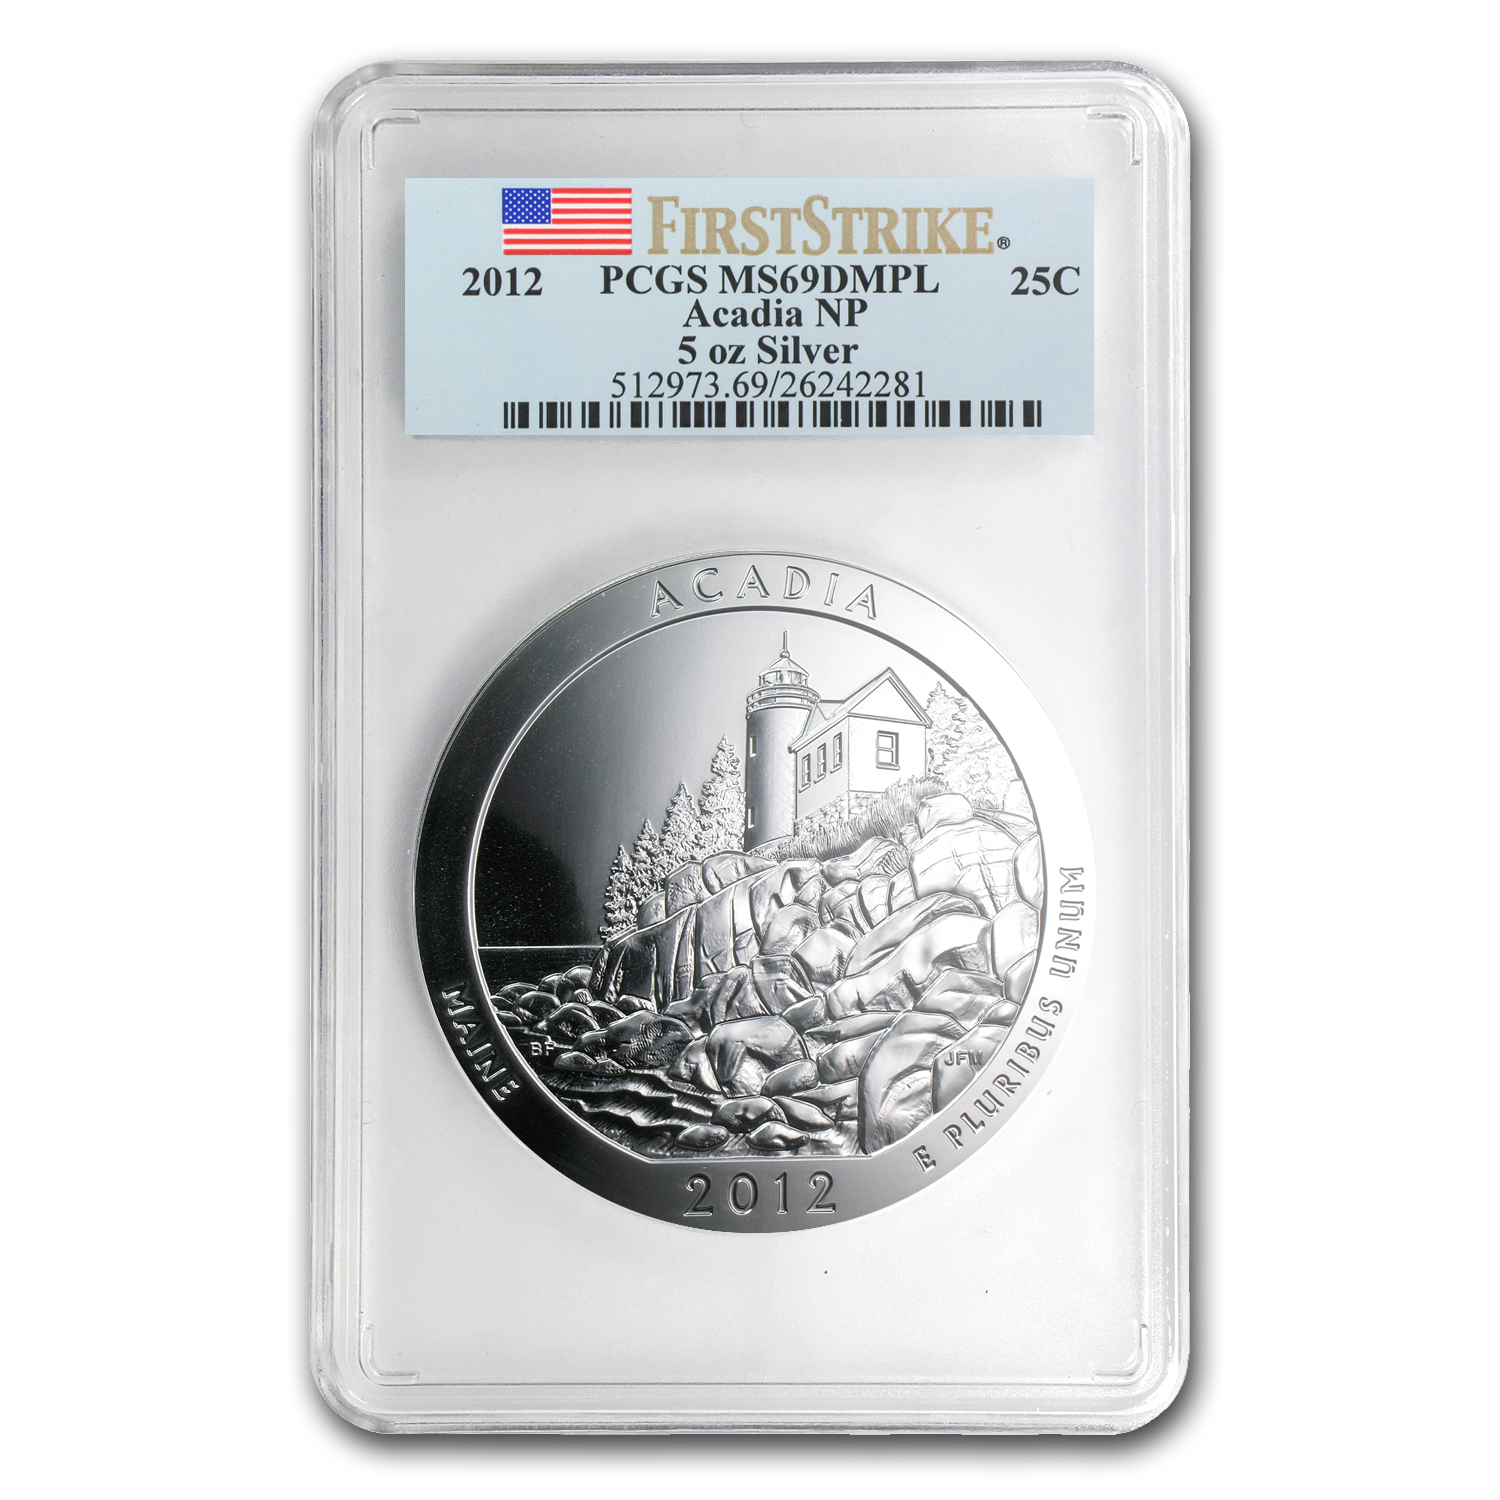 2010 - 2012 5oz Silver ATB 15-Coin Set MS-69 DMPL (FS) PCGS